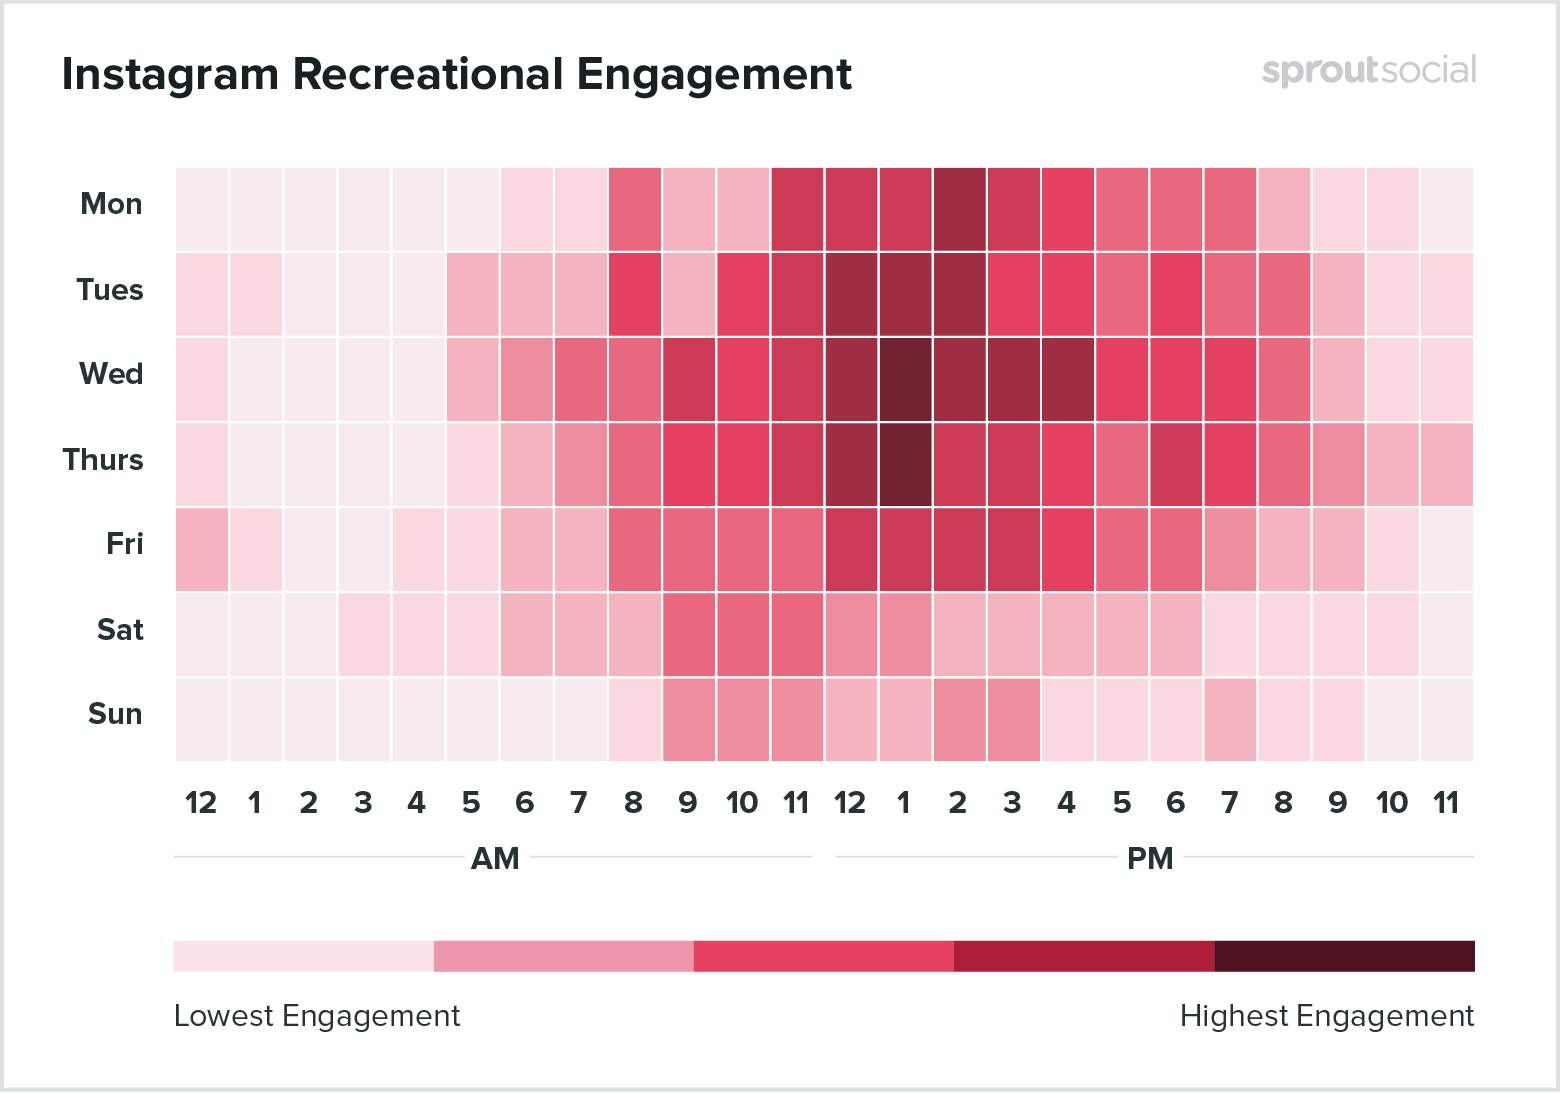 Best times to post on Instagram for recreation